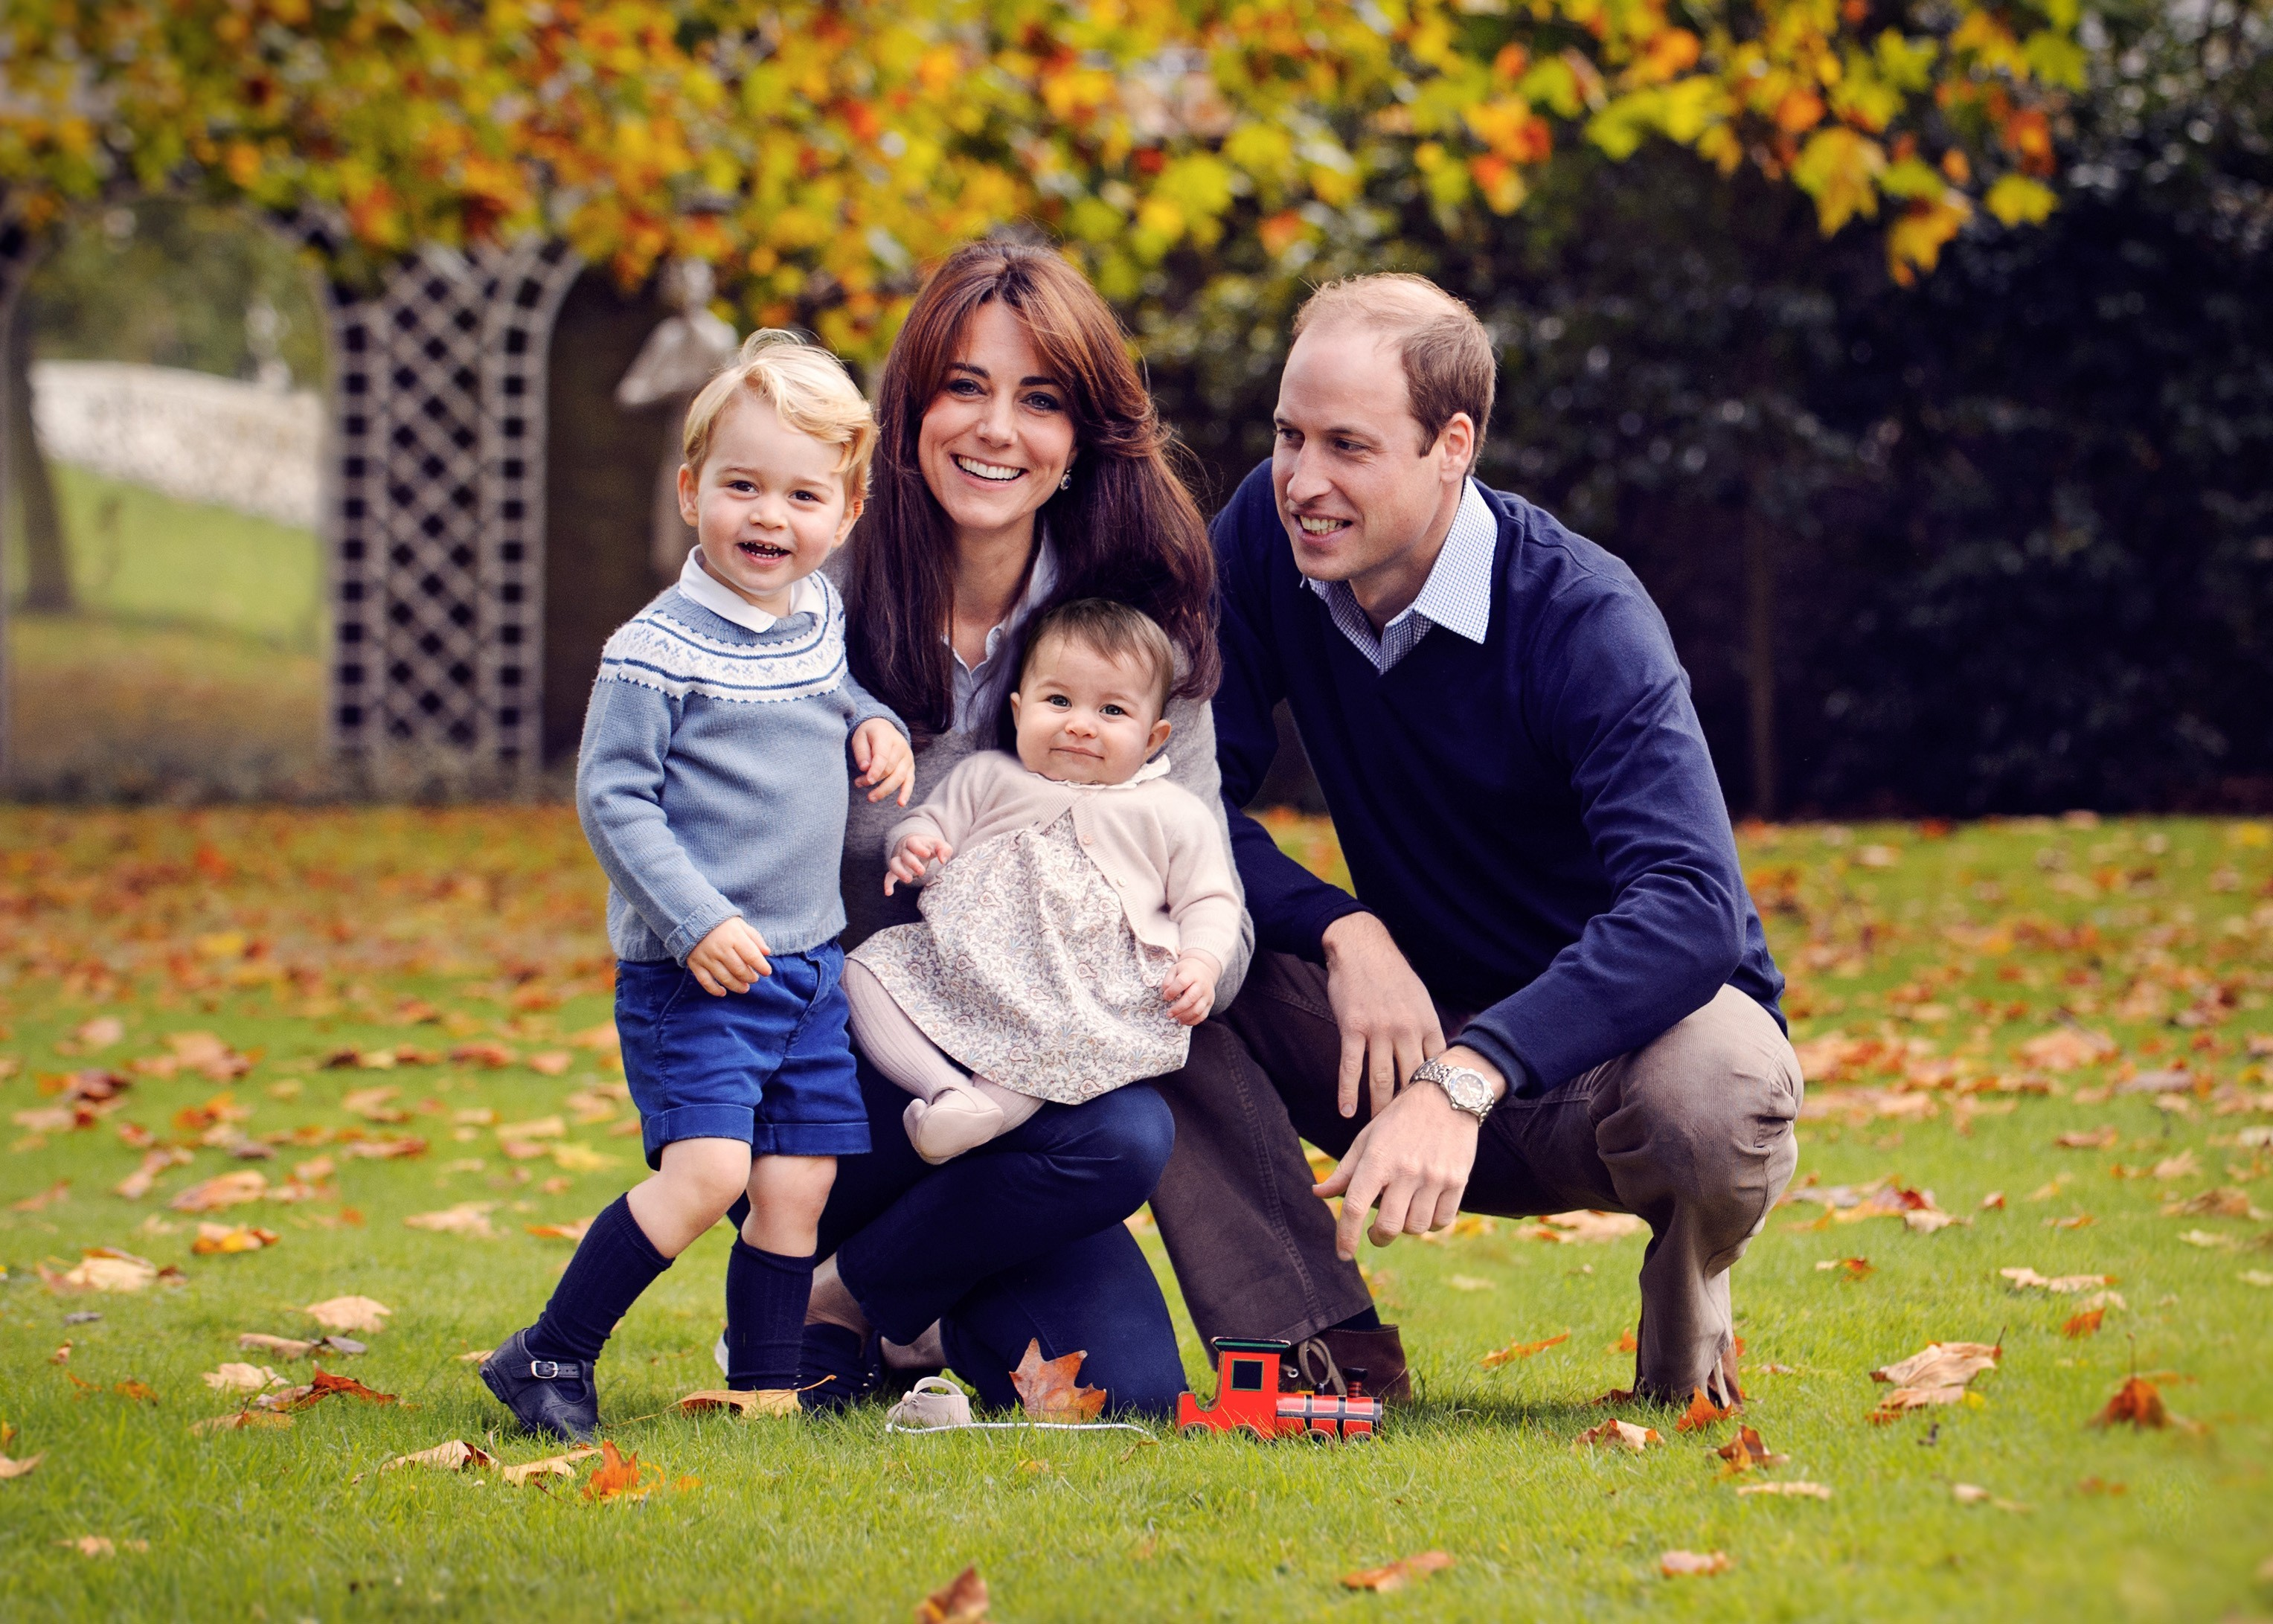 Will and Kate's Anmer Hall style is super chill